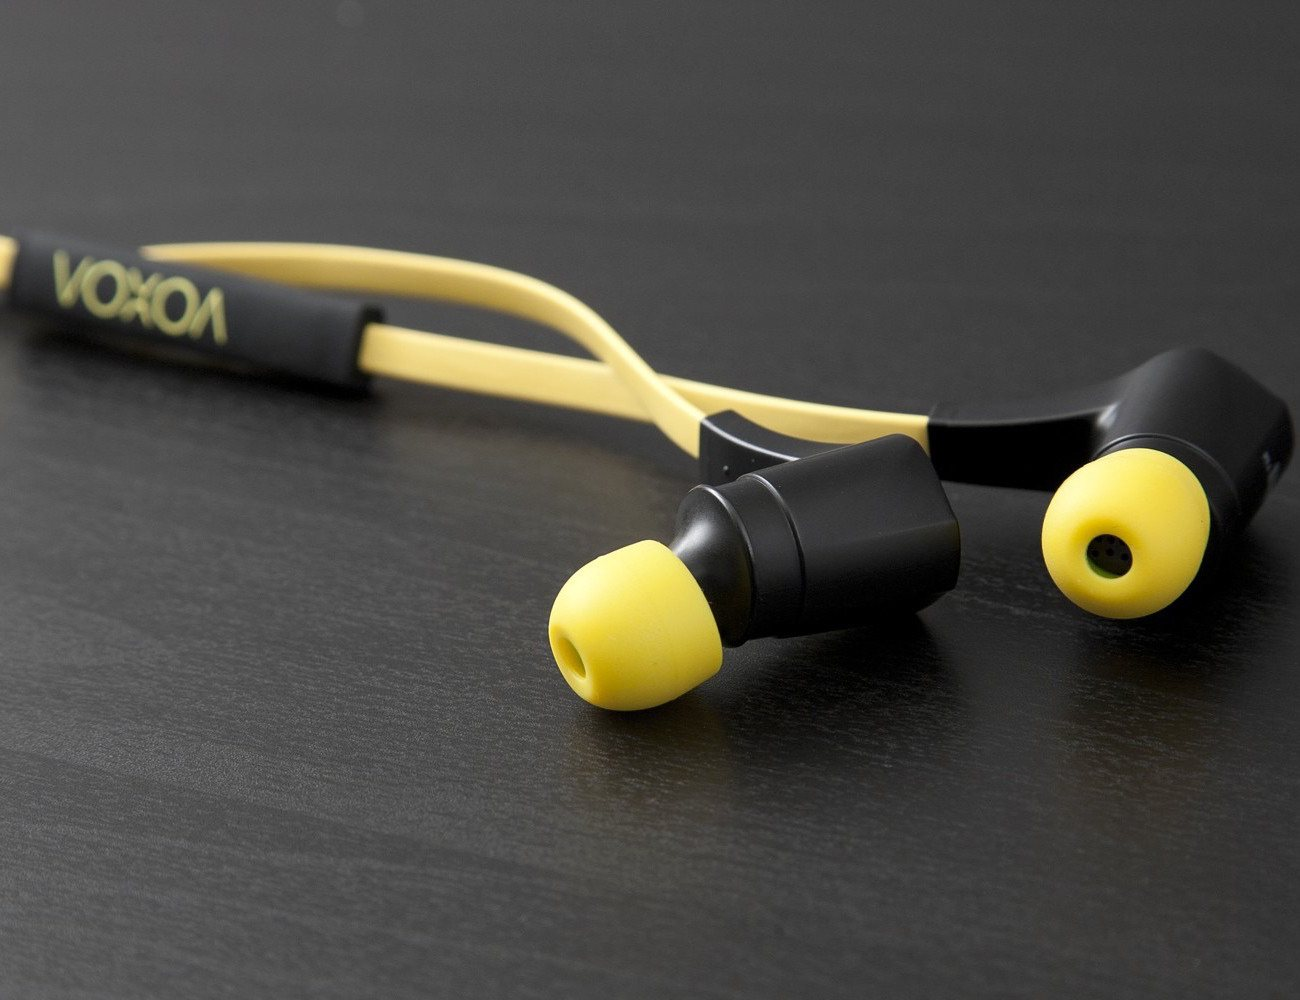 VOXOA Sports Wireless Earphones – Sweatproof and Water-Resistant